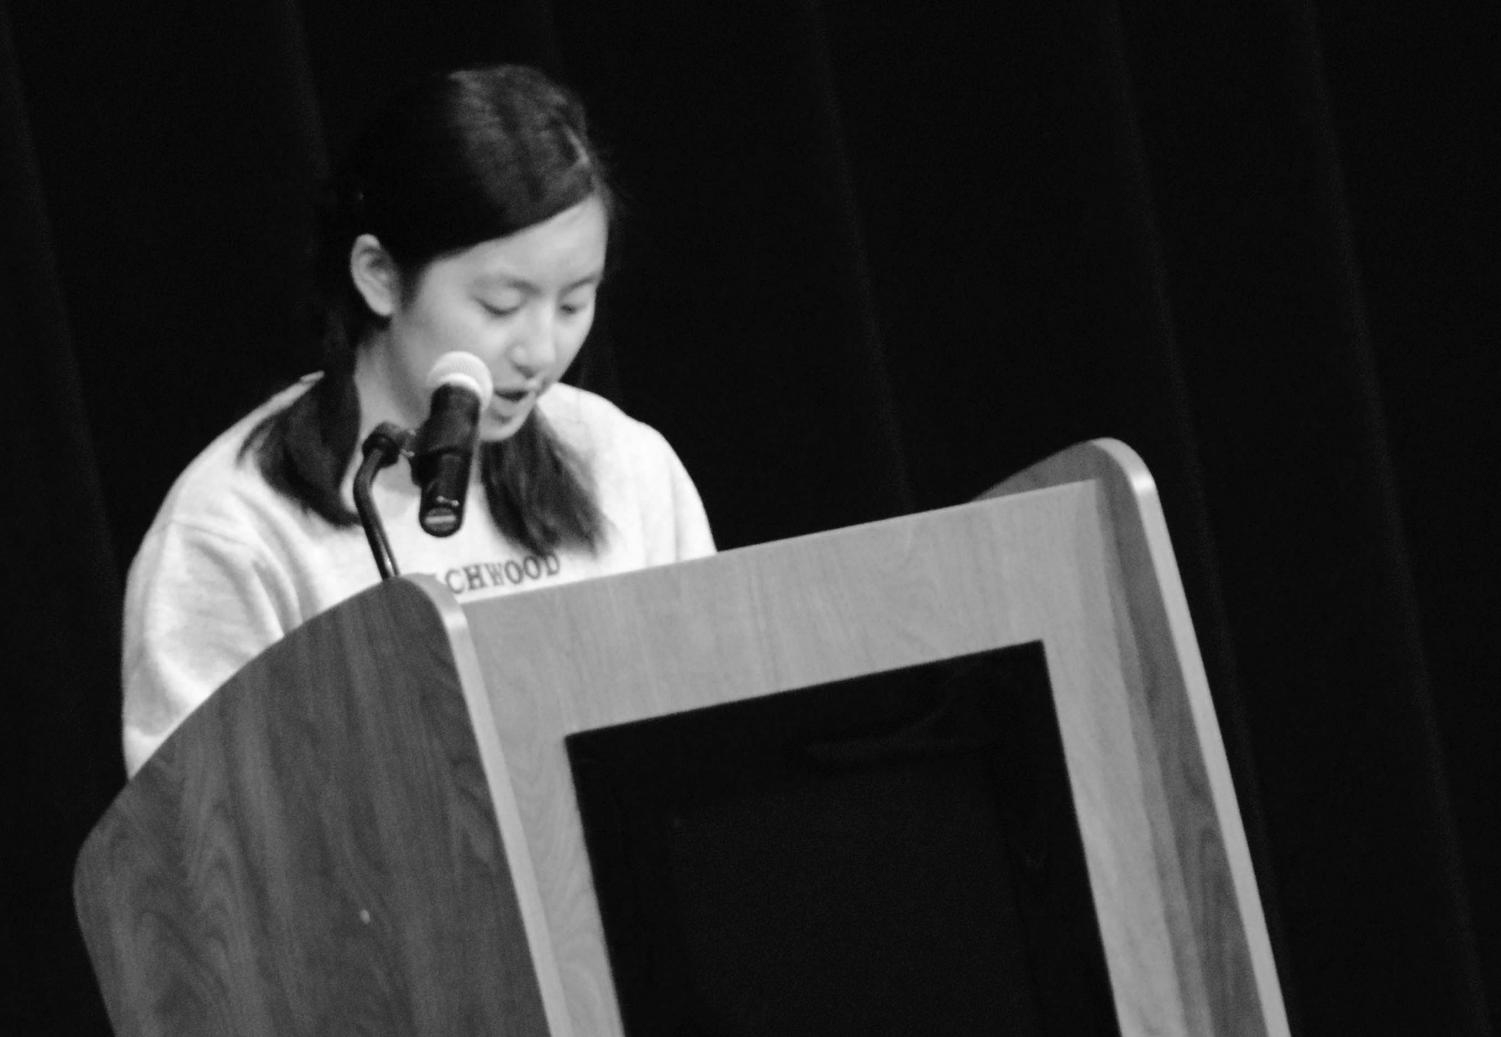 Student Council Exec Board President-Elect Jing-Jing Shen addressed the student body at the presentation of candidates on Friday, Feb. 23. Photo by Jemiah Richardson